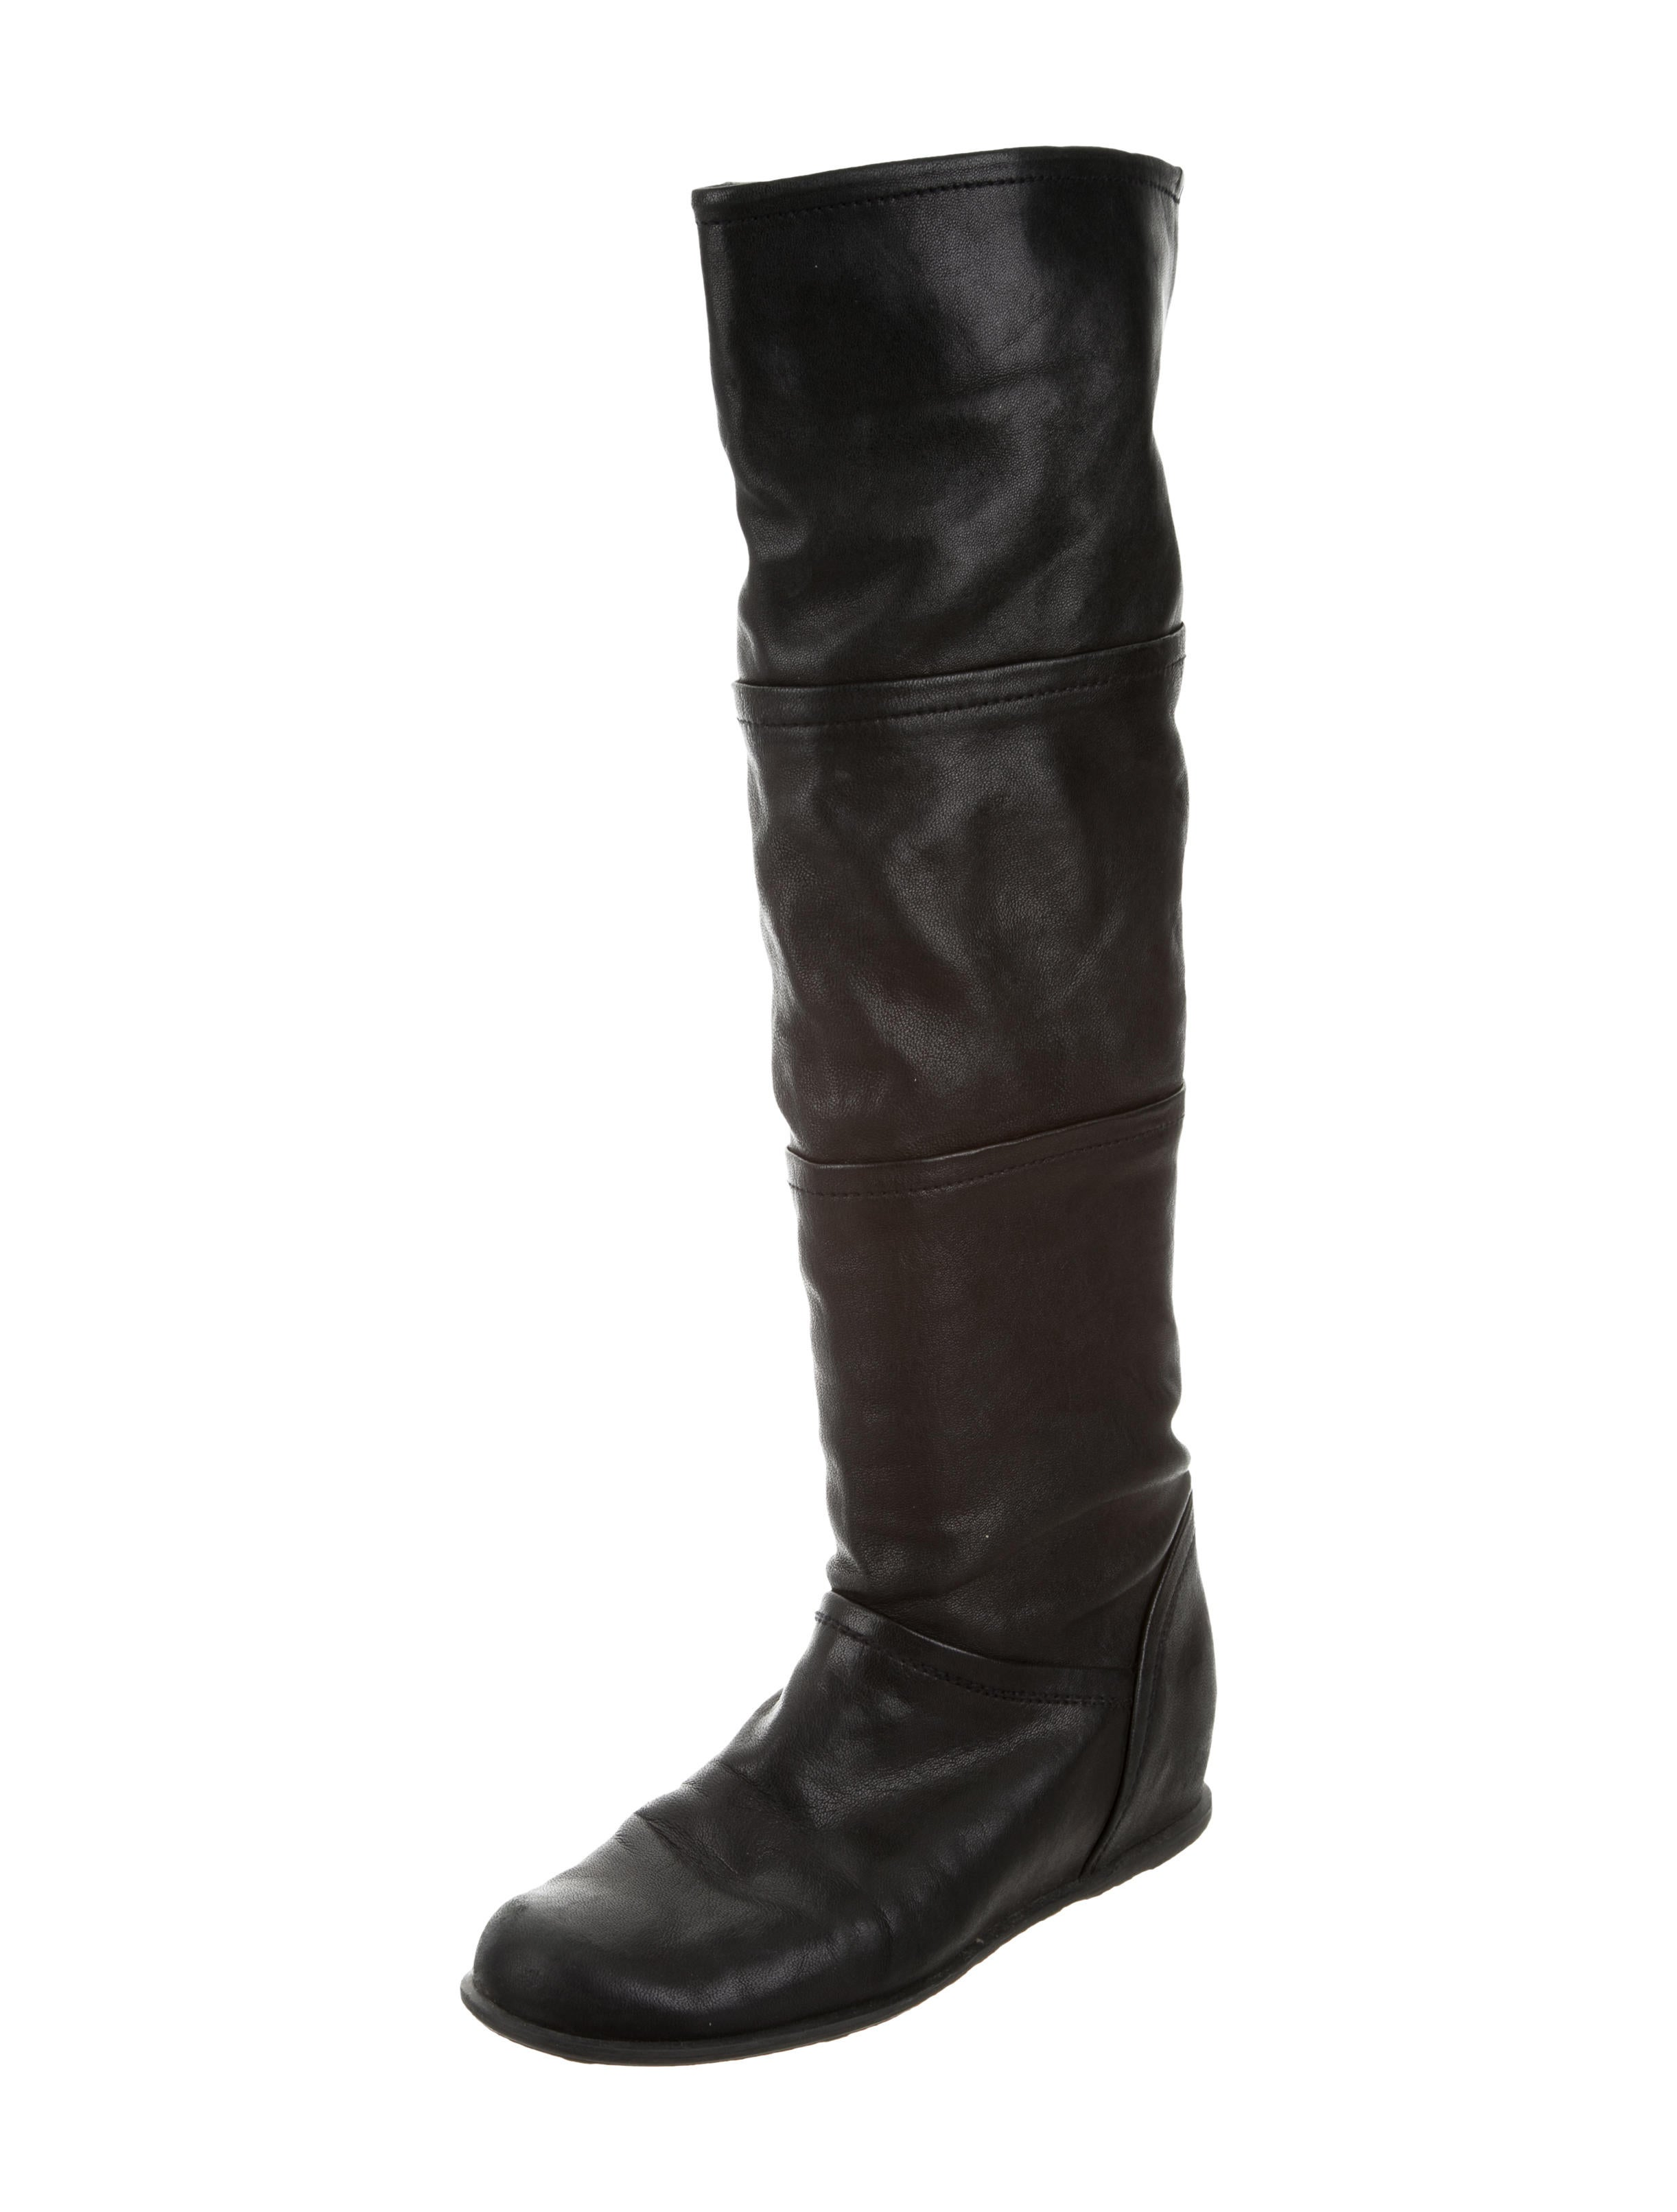 Knee-high and Dress Boots Say goodbye to boring boots and say hello to knee-high and dress boots at Shoe Carnival. Look for chic, understated dress options in black or brown, or pick over-the-knee and high-heeled boots to make a dramatic statement.